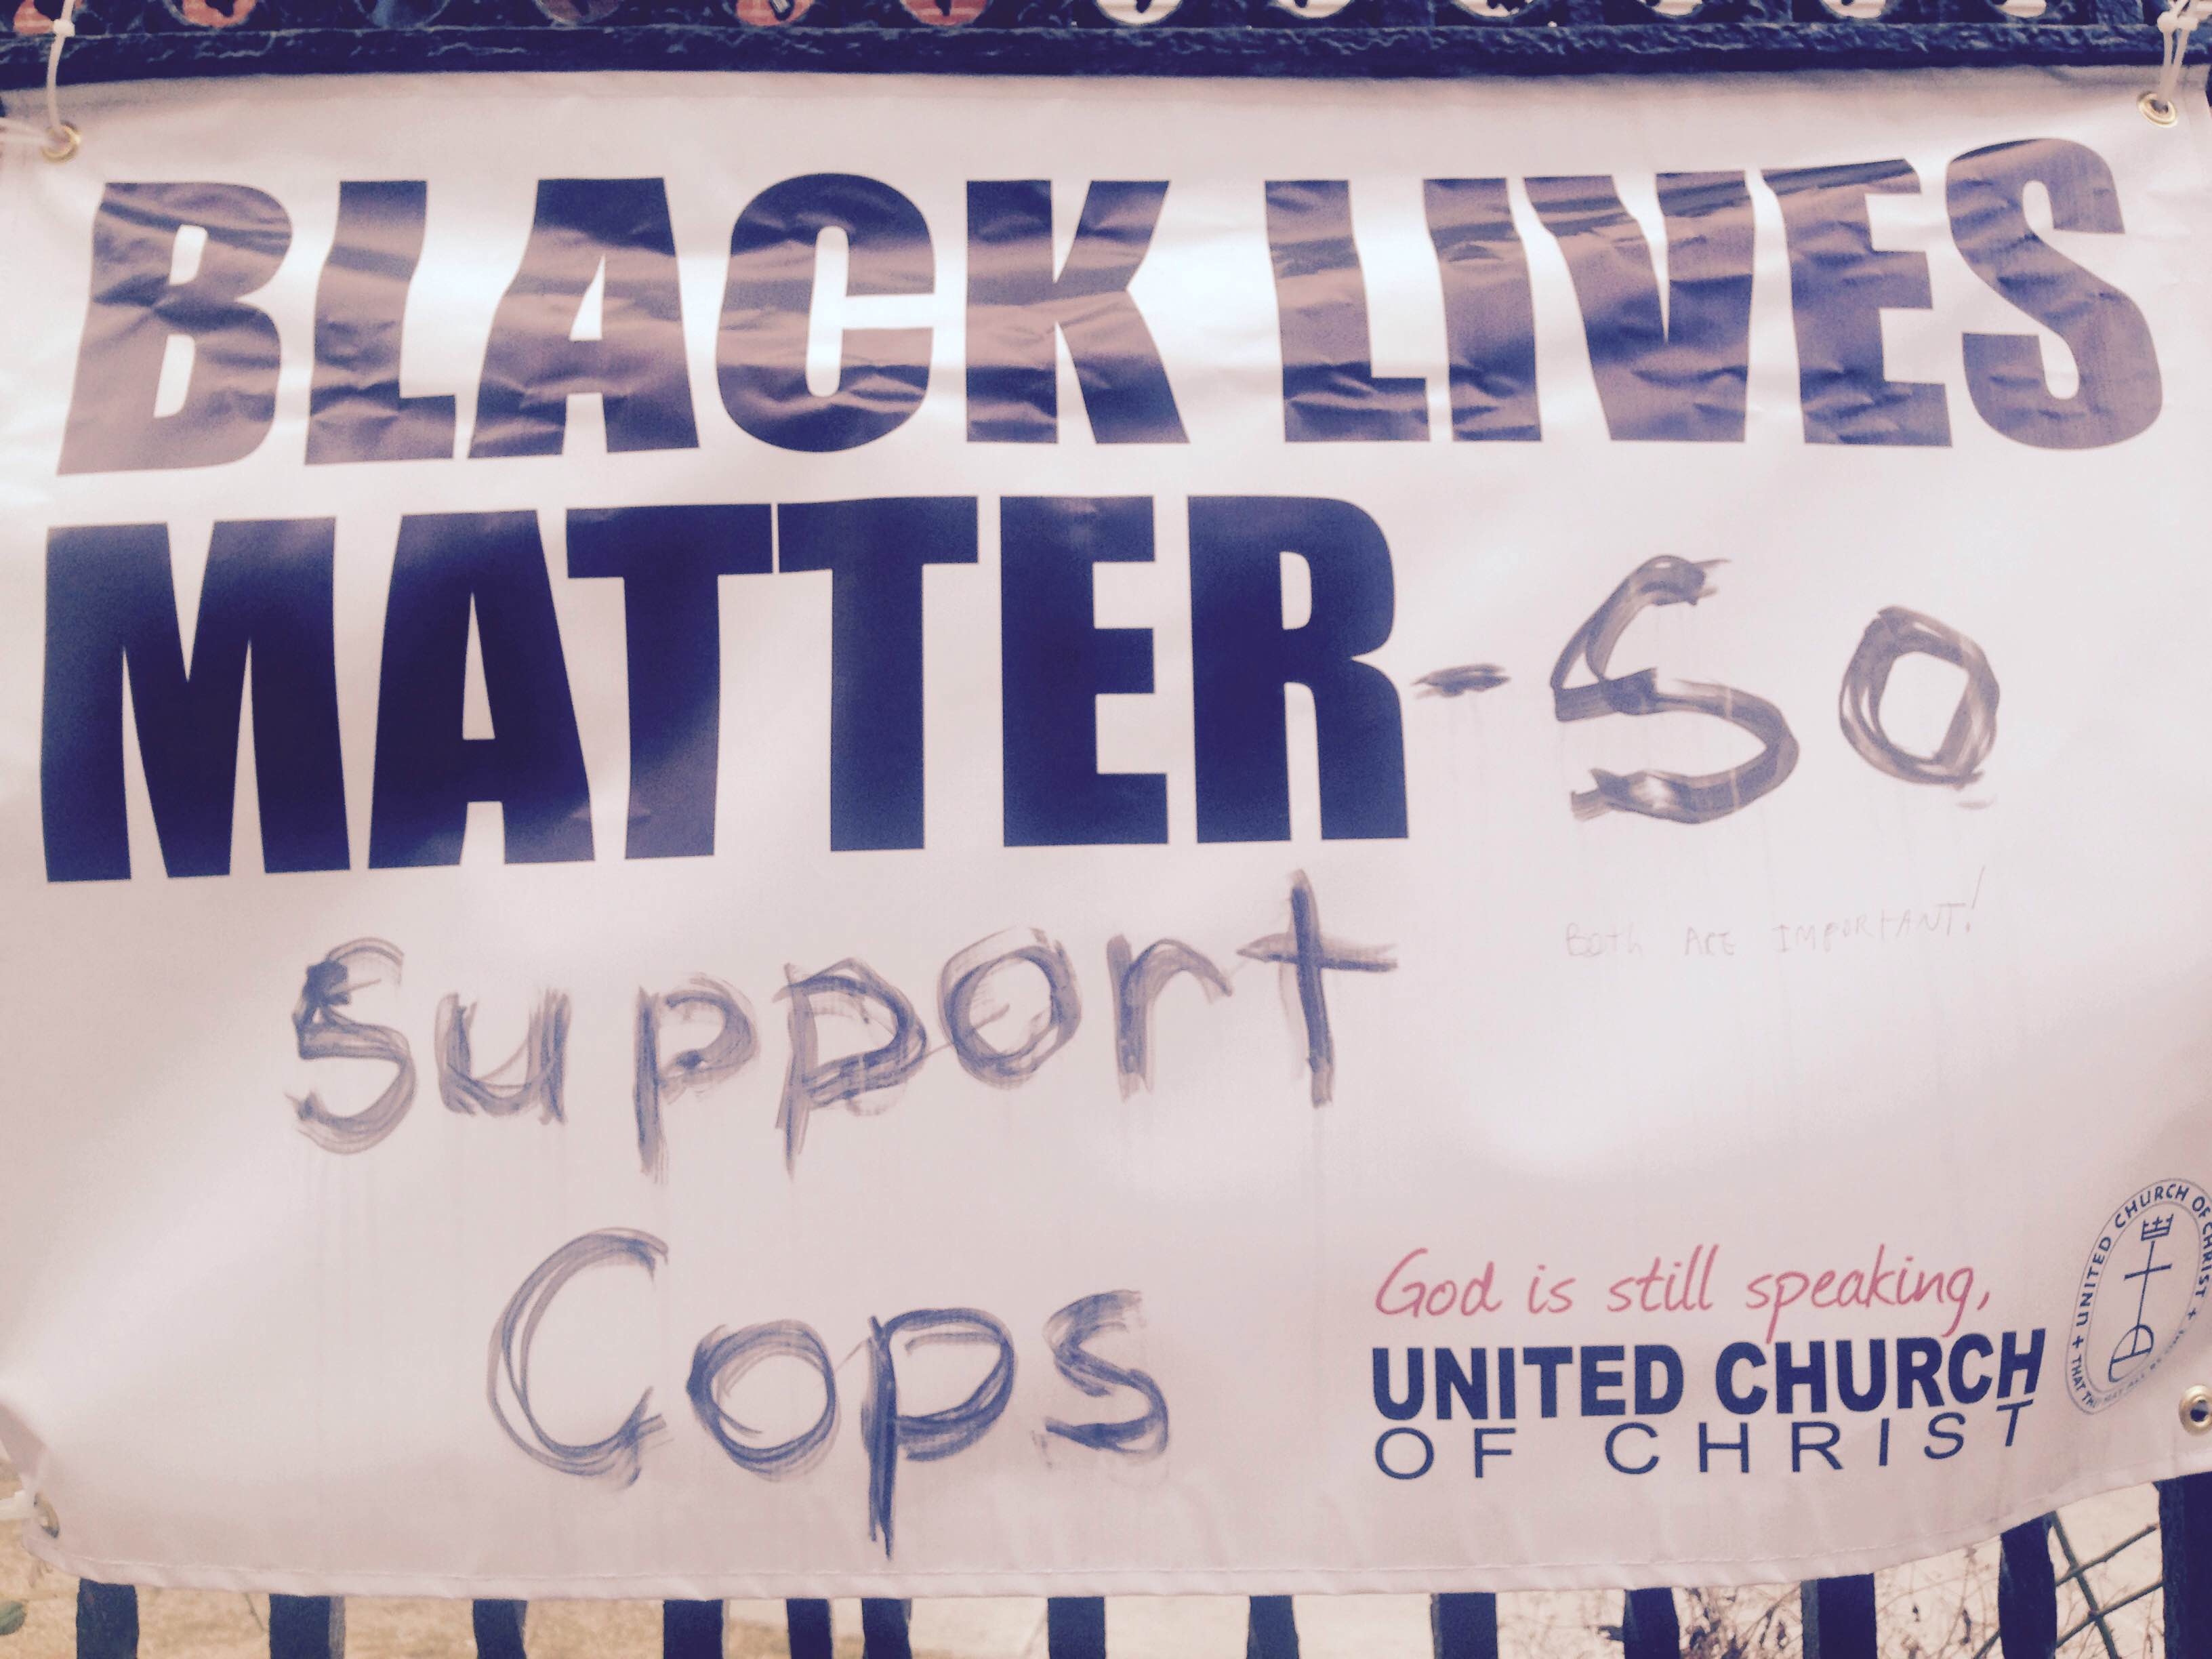 black_lives_matter_banner_-_greenpoint_reformed_church.jpg